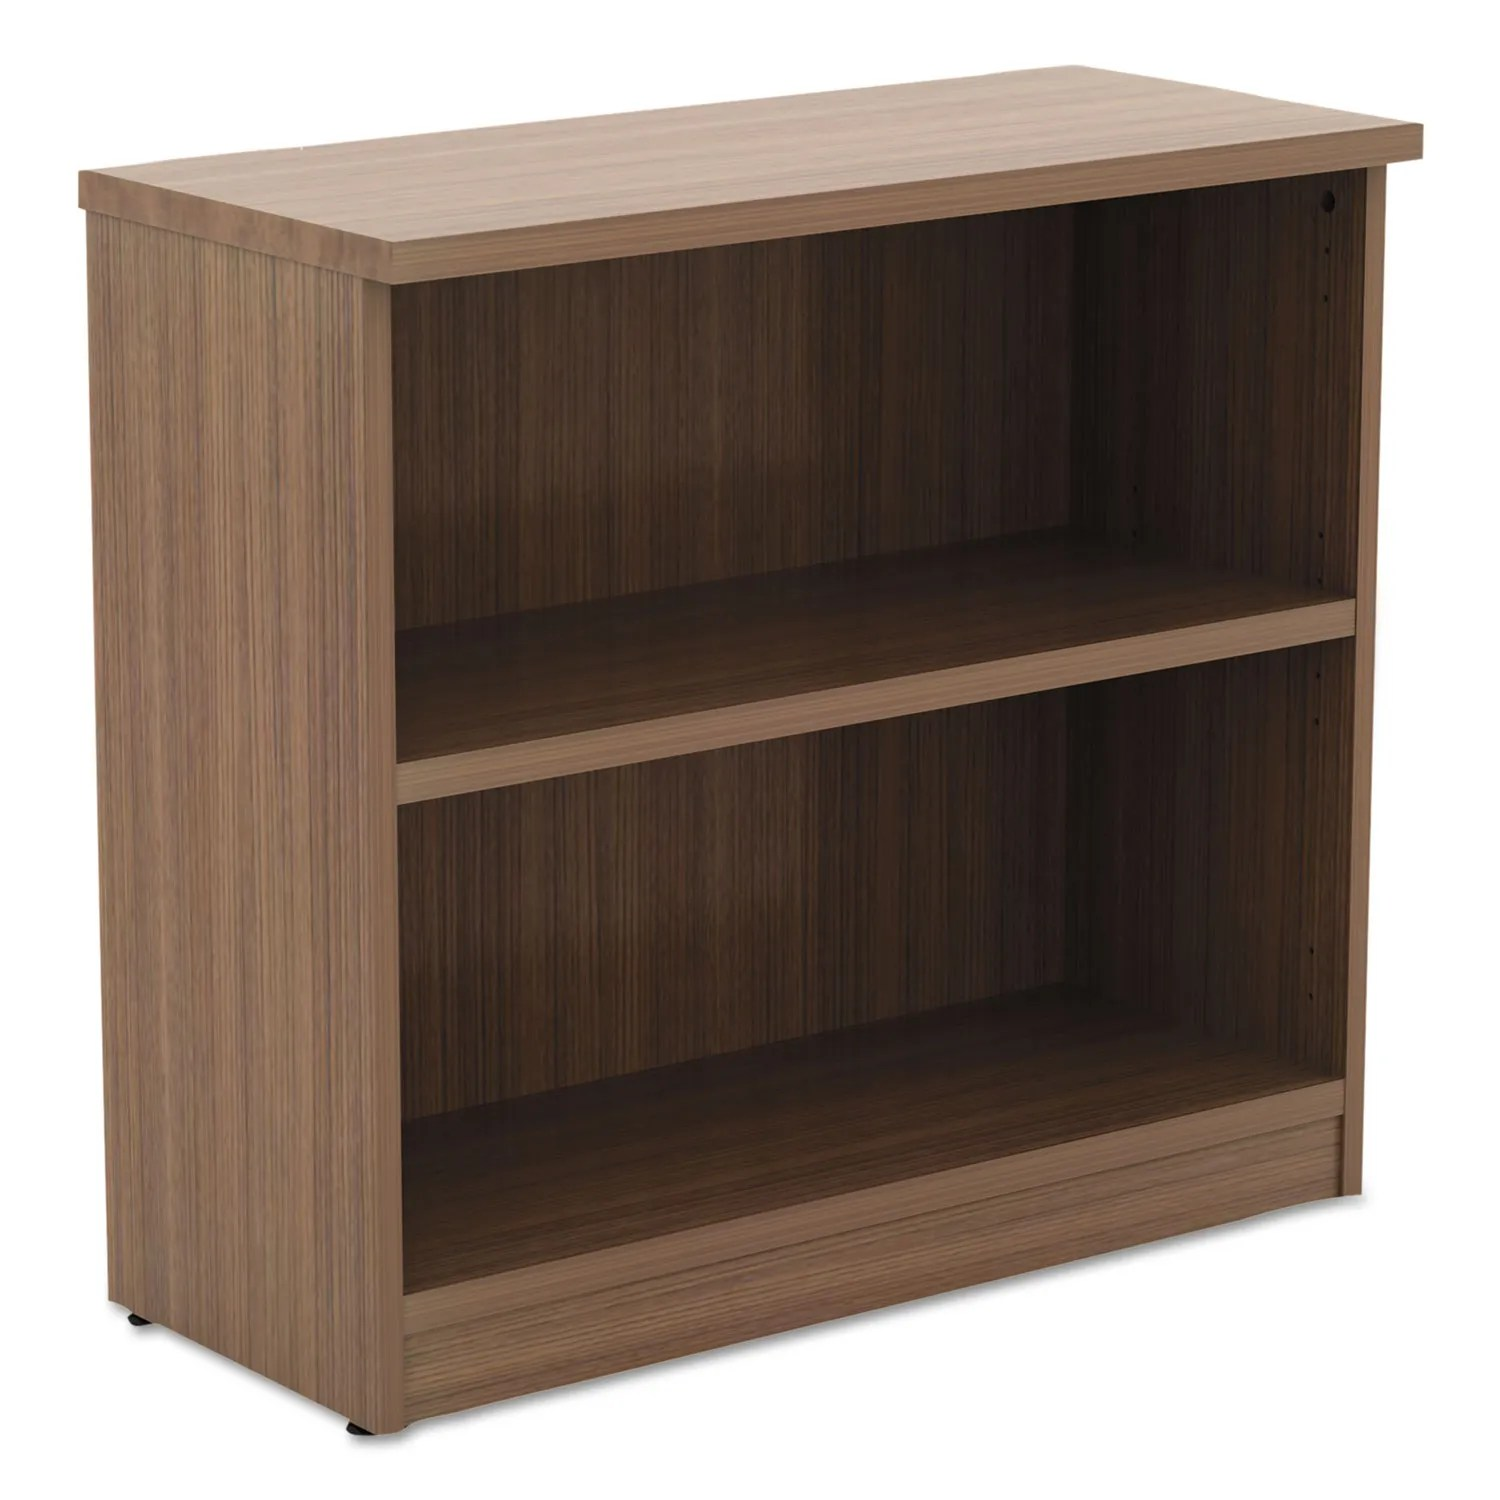 Alera Valencia Series Bookcase Two Shelf 31 3 4w X 14d X 29 1 2h Modern Walnut